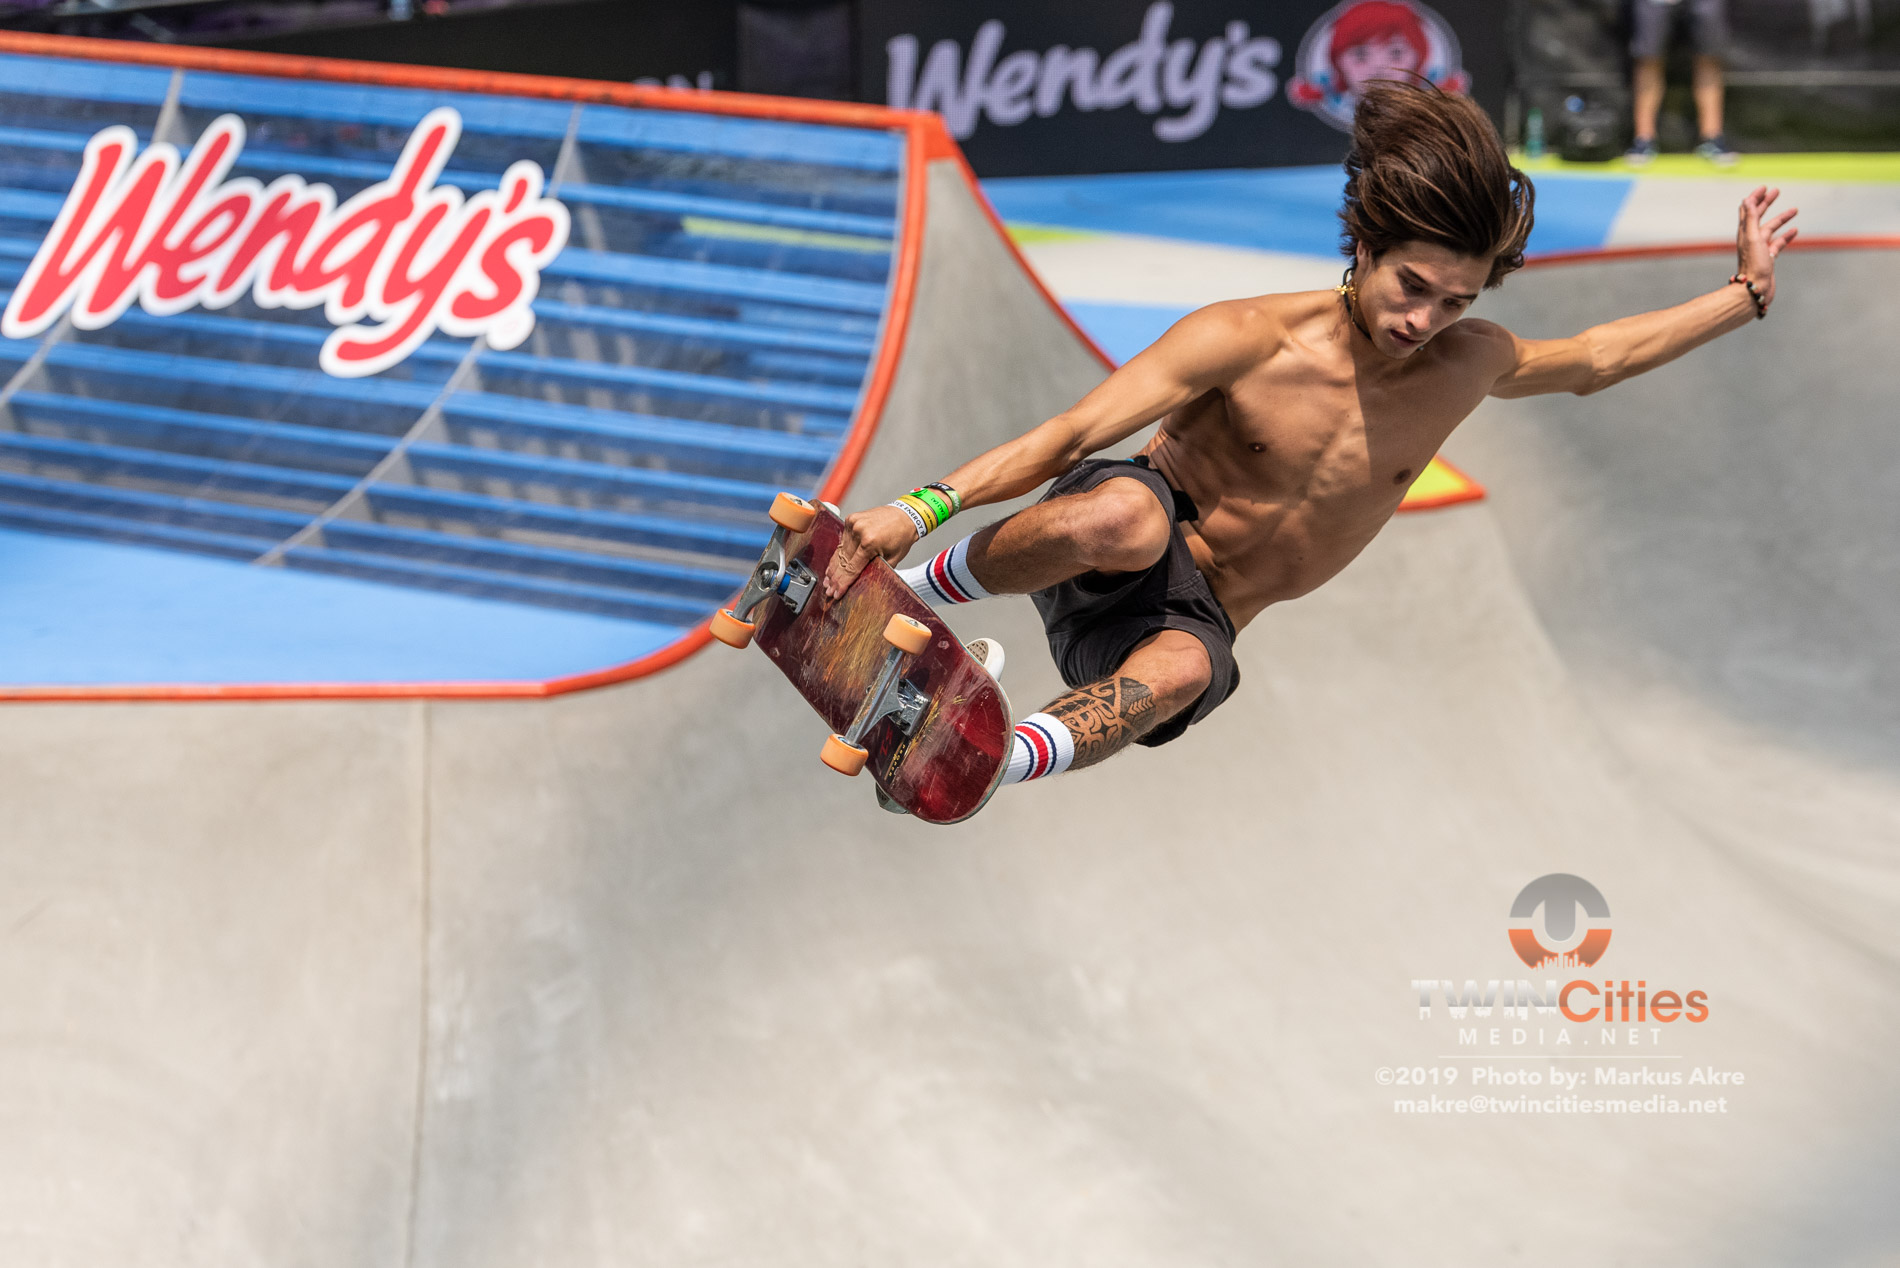 2019-X-Games-Day-4-Mens-Skateboard-Park-12